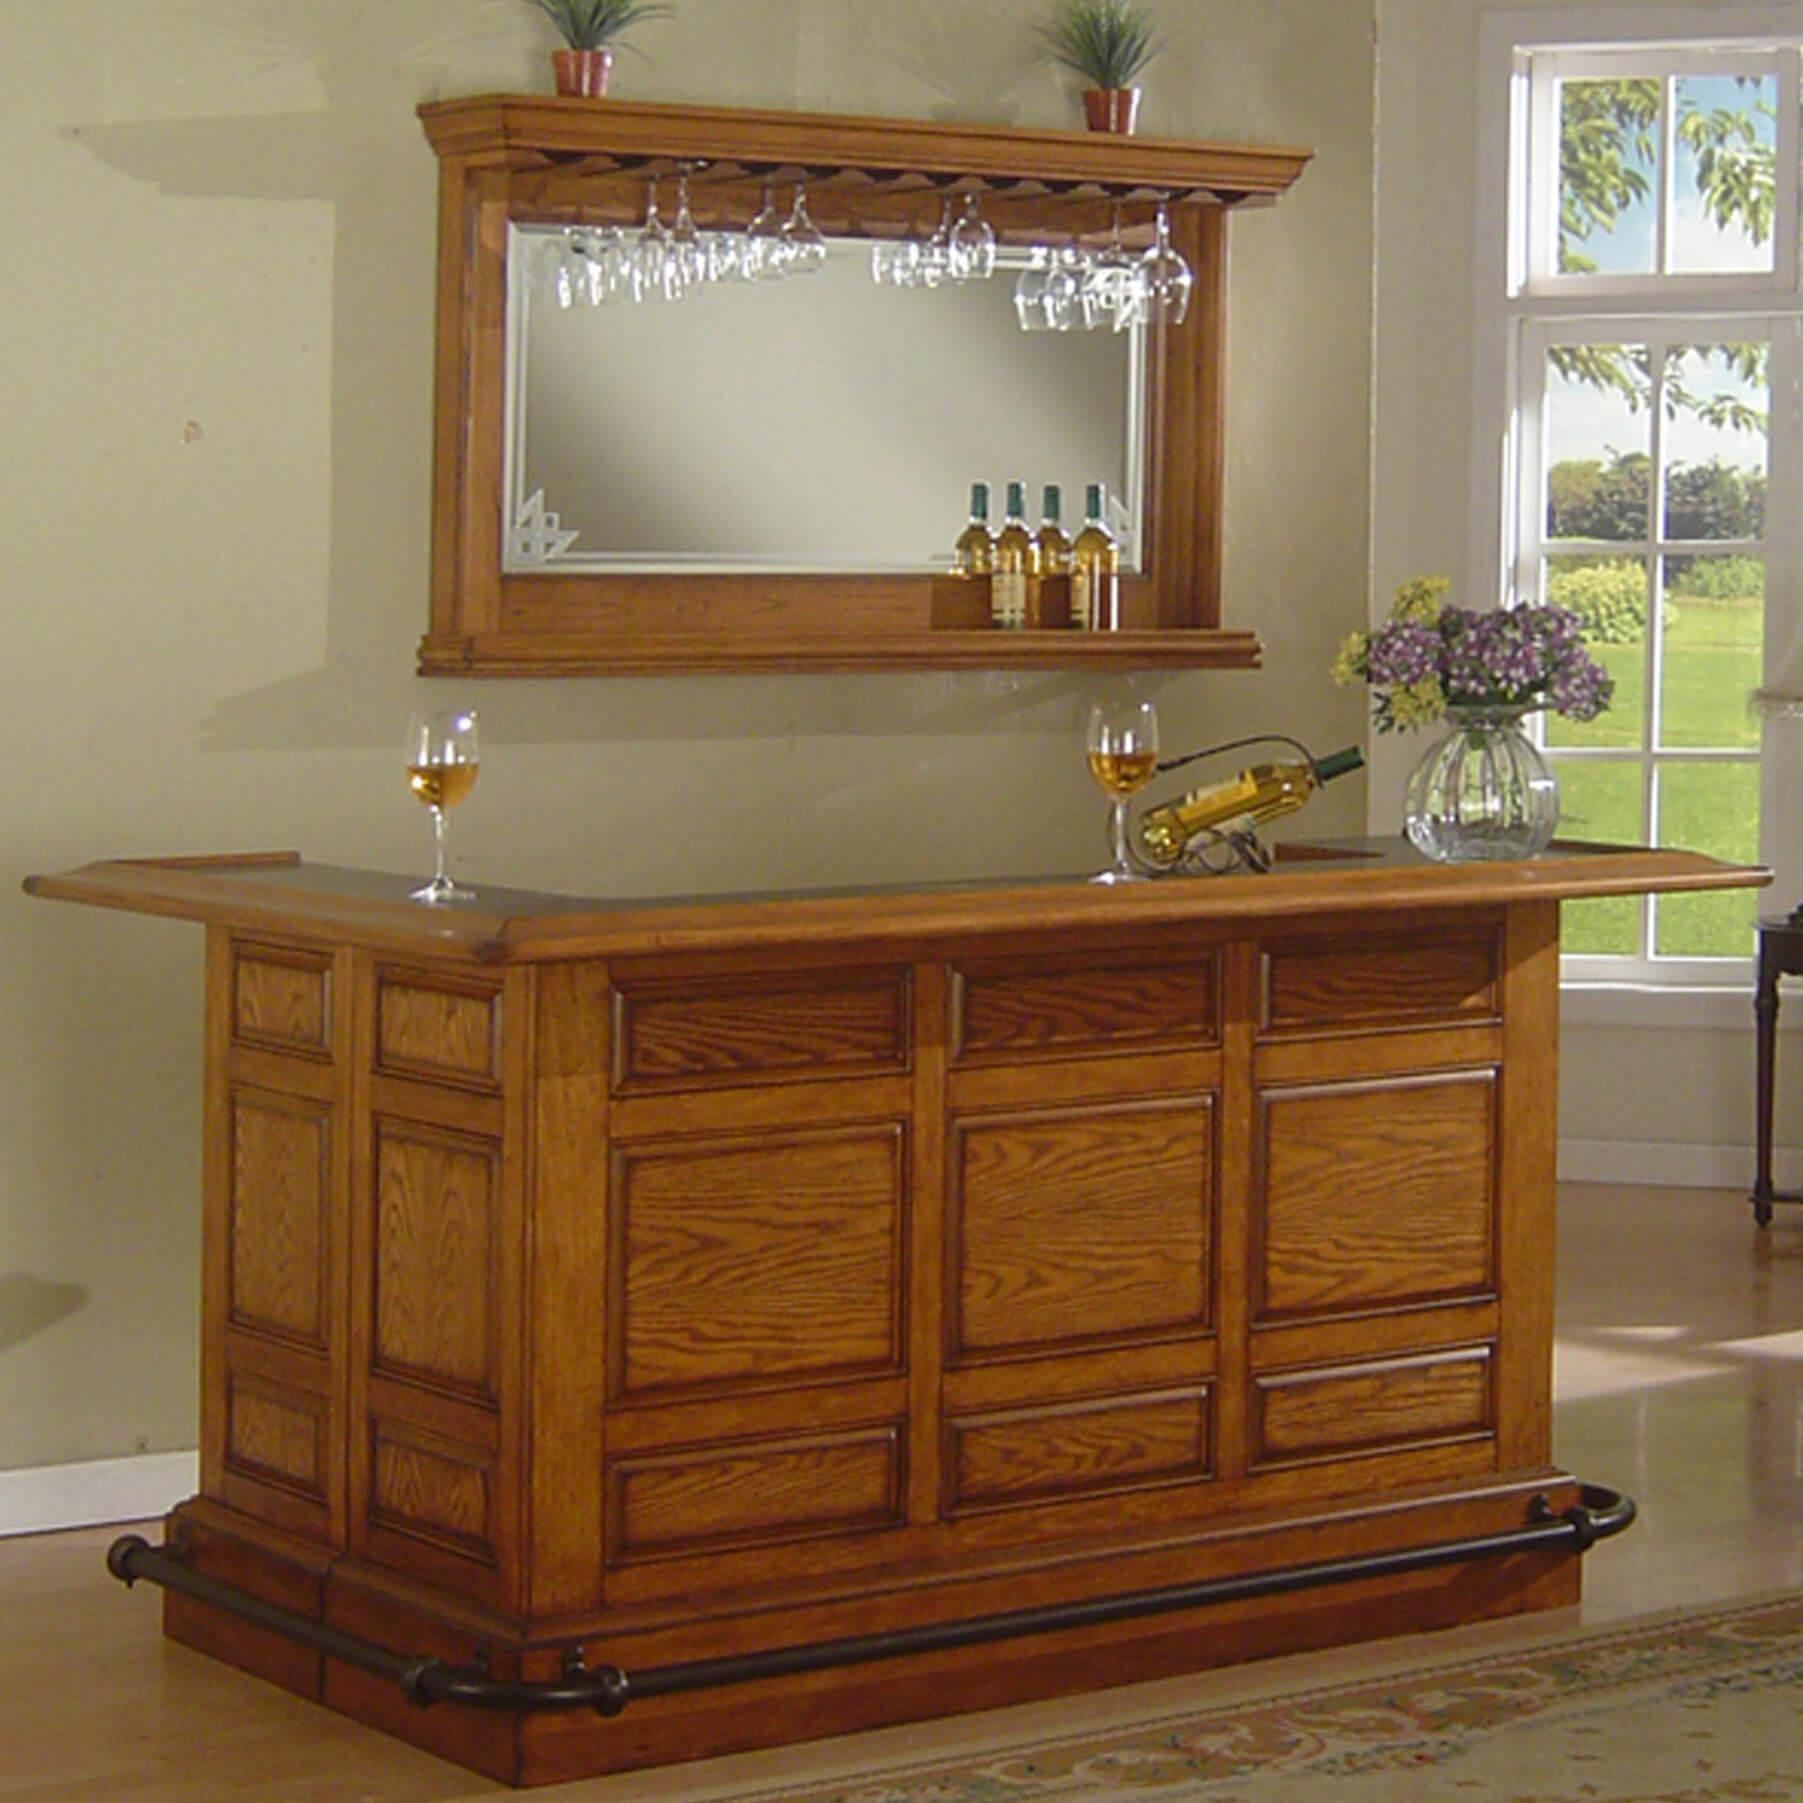 Merveilleux Solid Wood Home Bar With Wrap Around Counter.